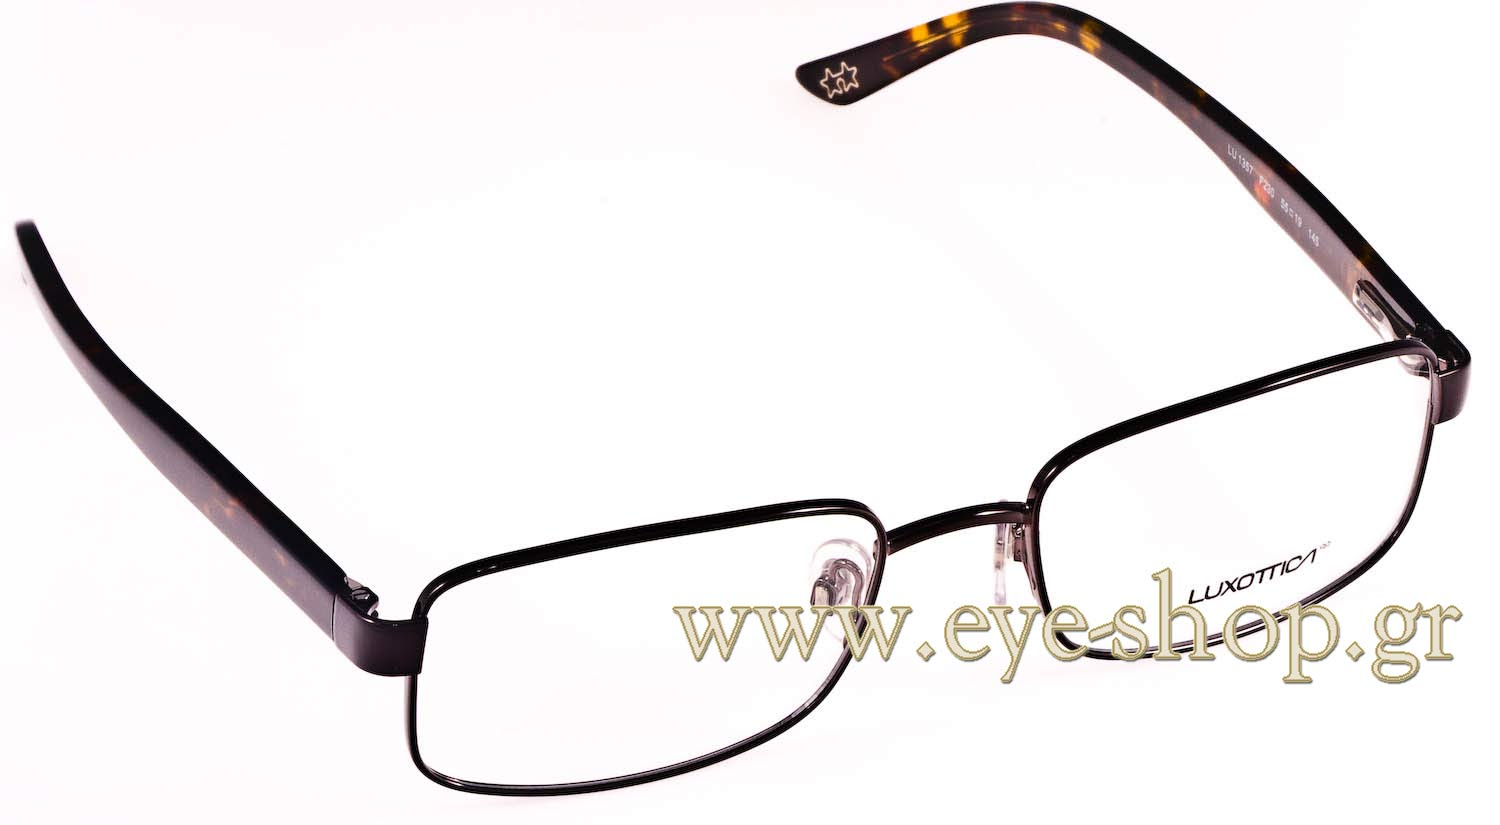 Eyeglass Frames Not Made By Luxottica : EYEWEAR LUXOTTICA 1357 F230 55? Men 2017 ver1.